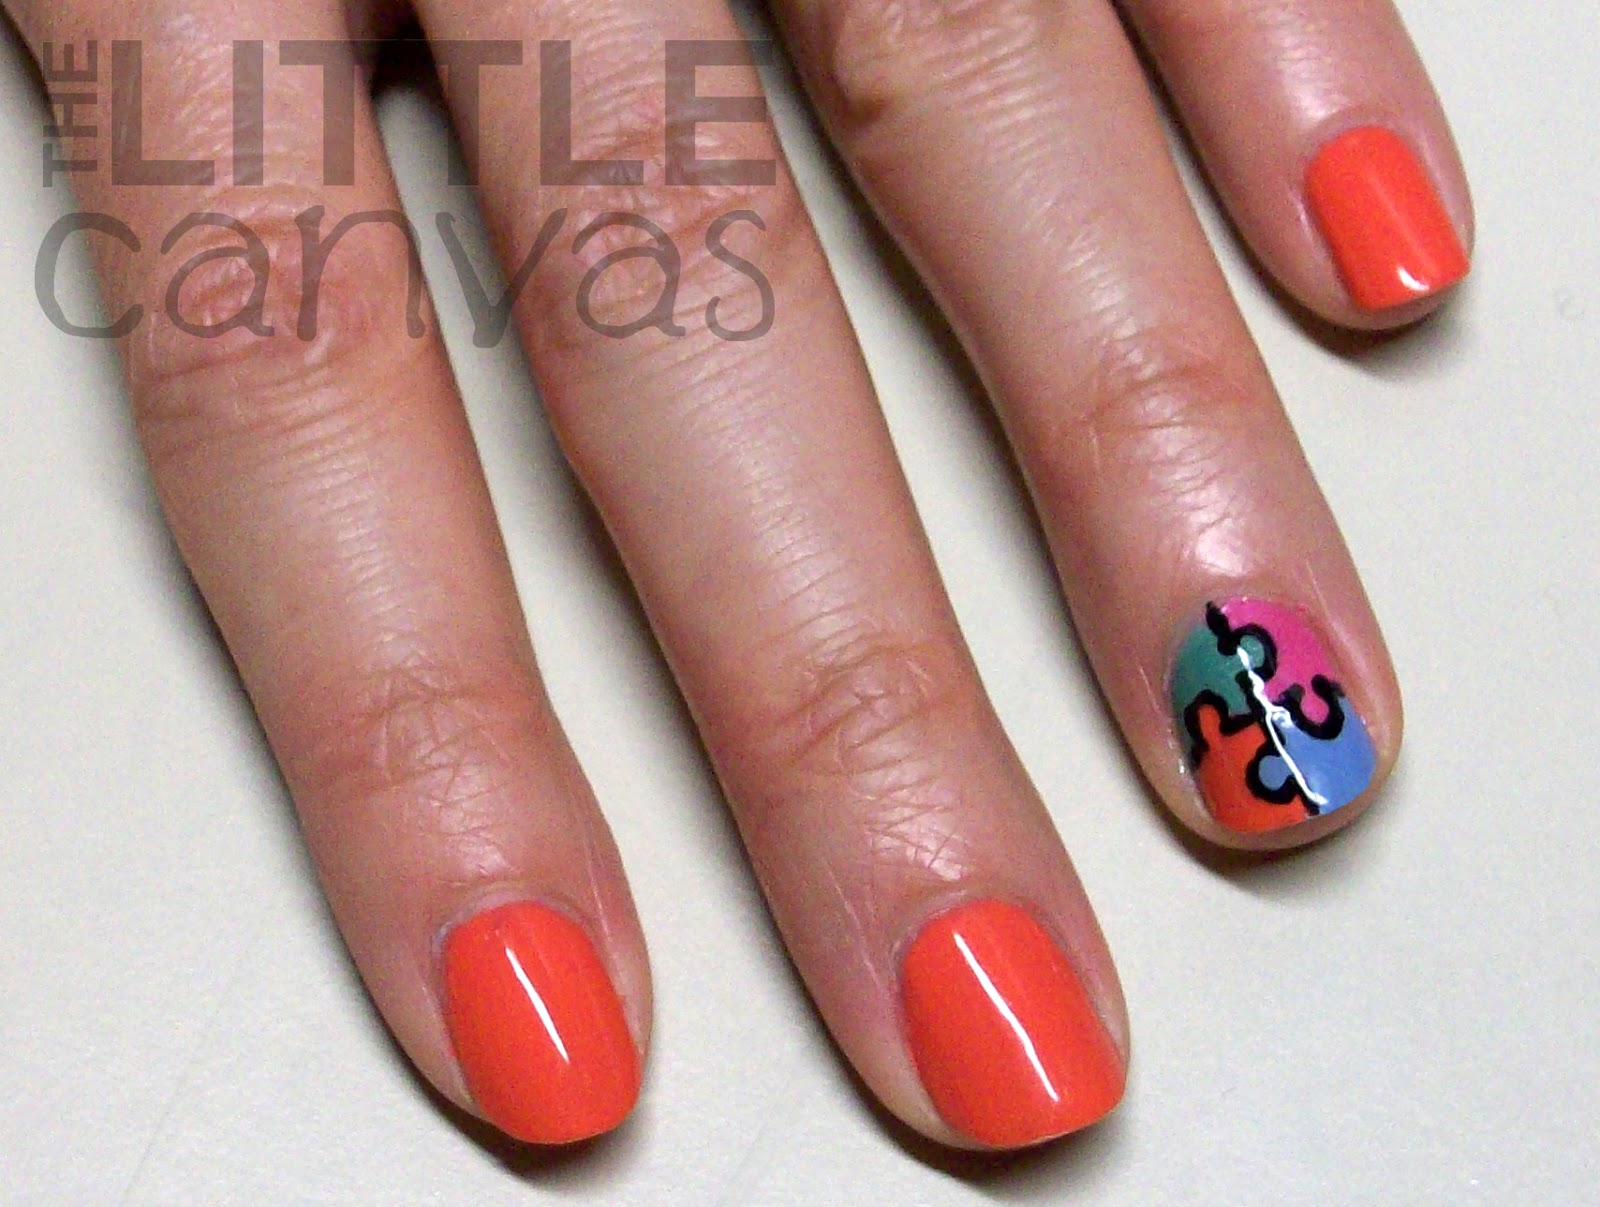 Puzzle Piece Nail Art - Essence Off to Miami! - The Little Canvas